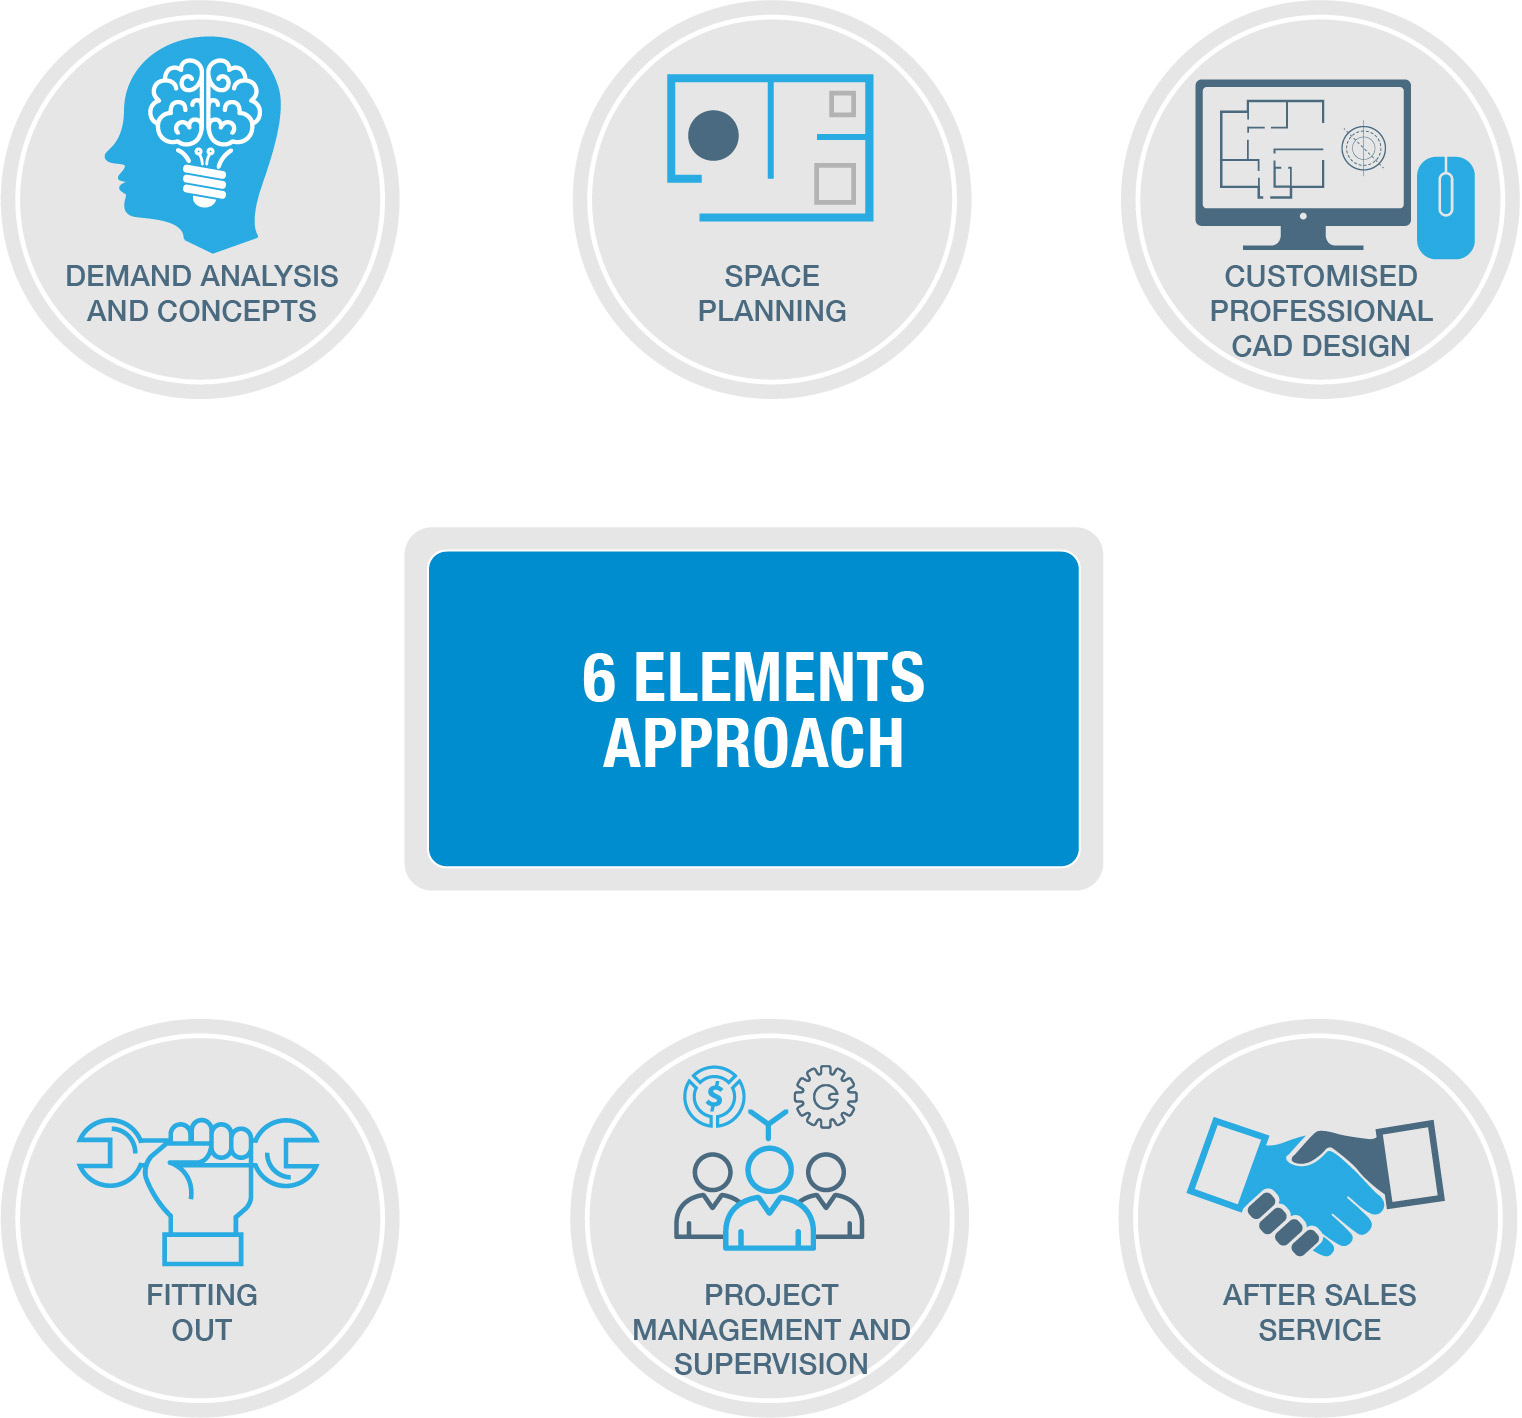 6 Elements Approach